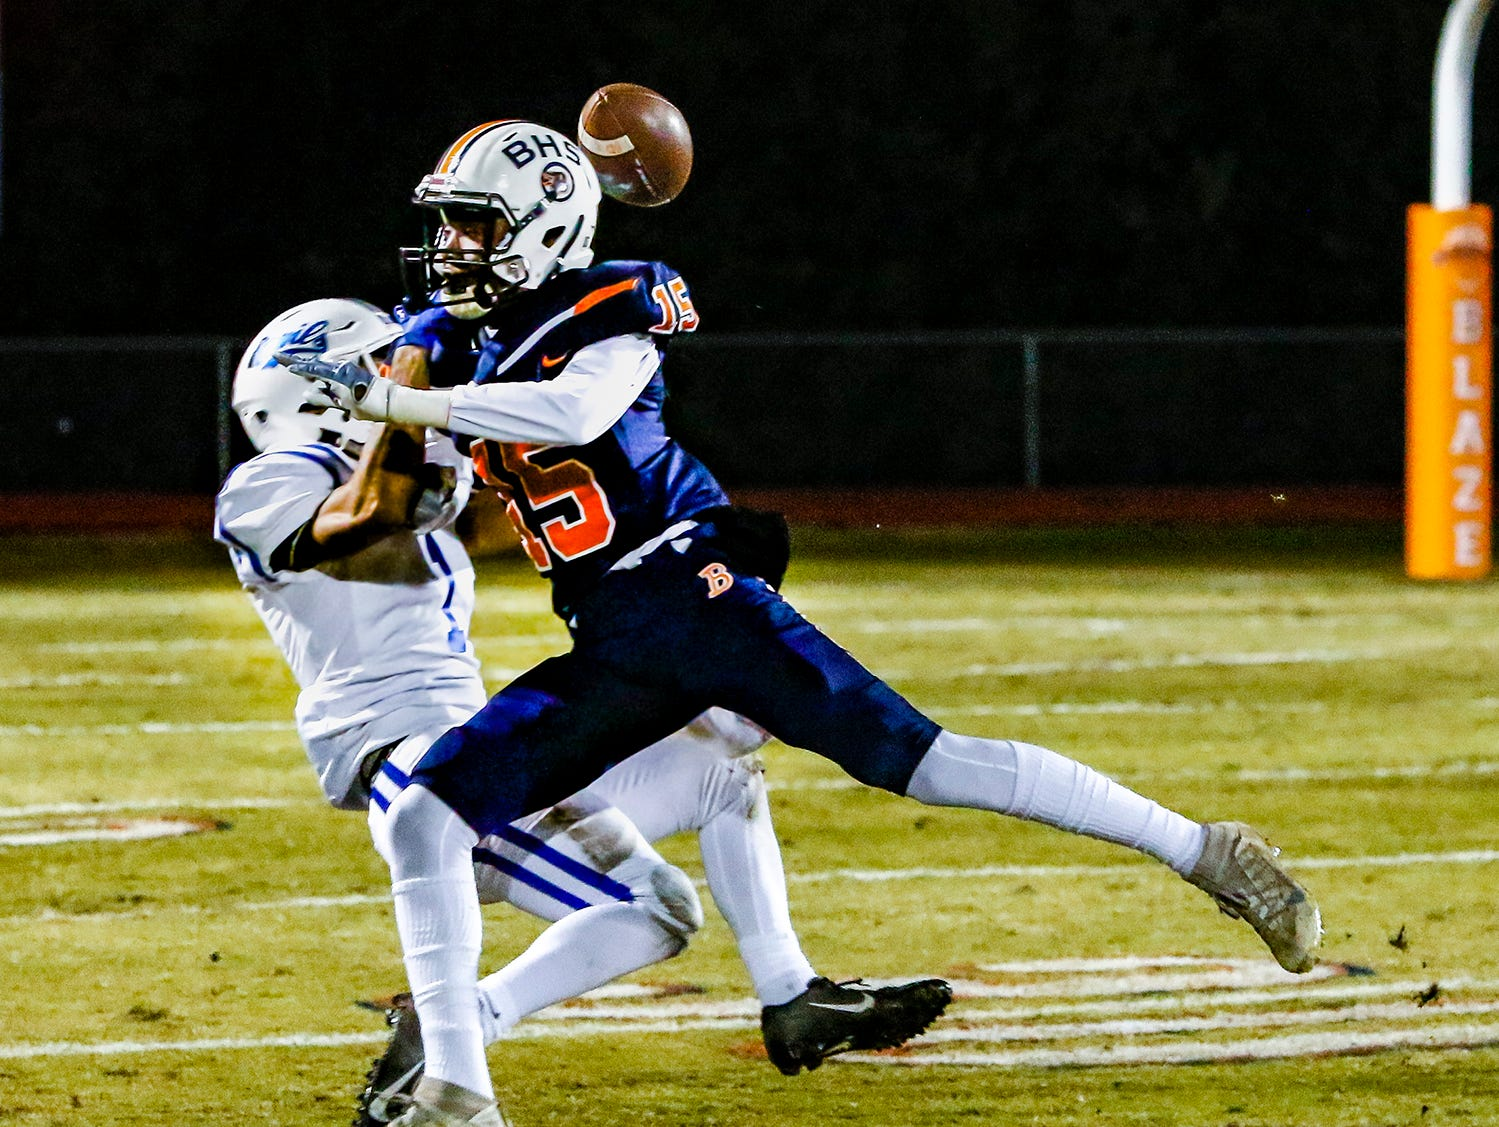 Blackman's William Camden puts a big hit on Lebanon's Tyson Kelley, preventing a pass reception.